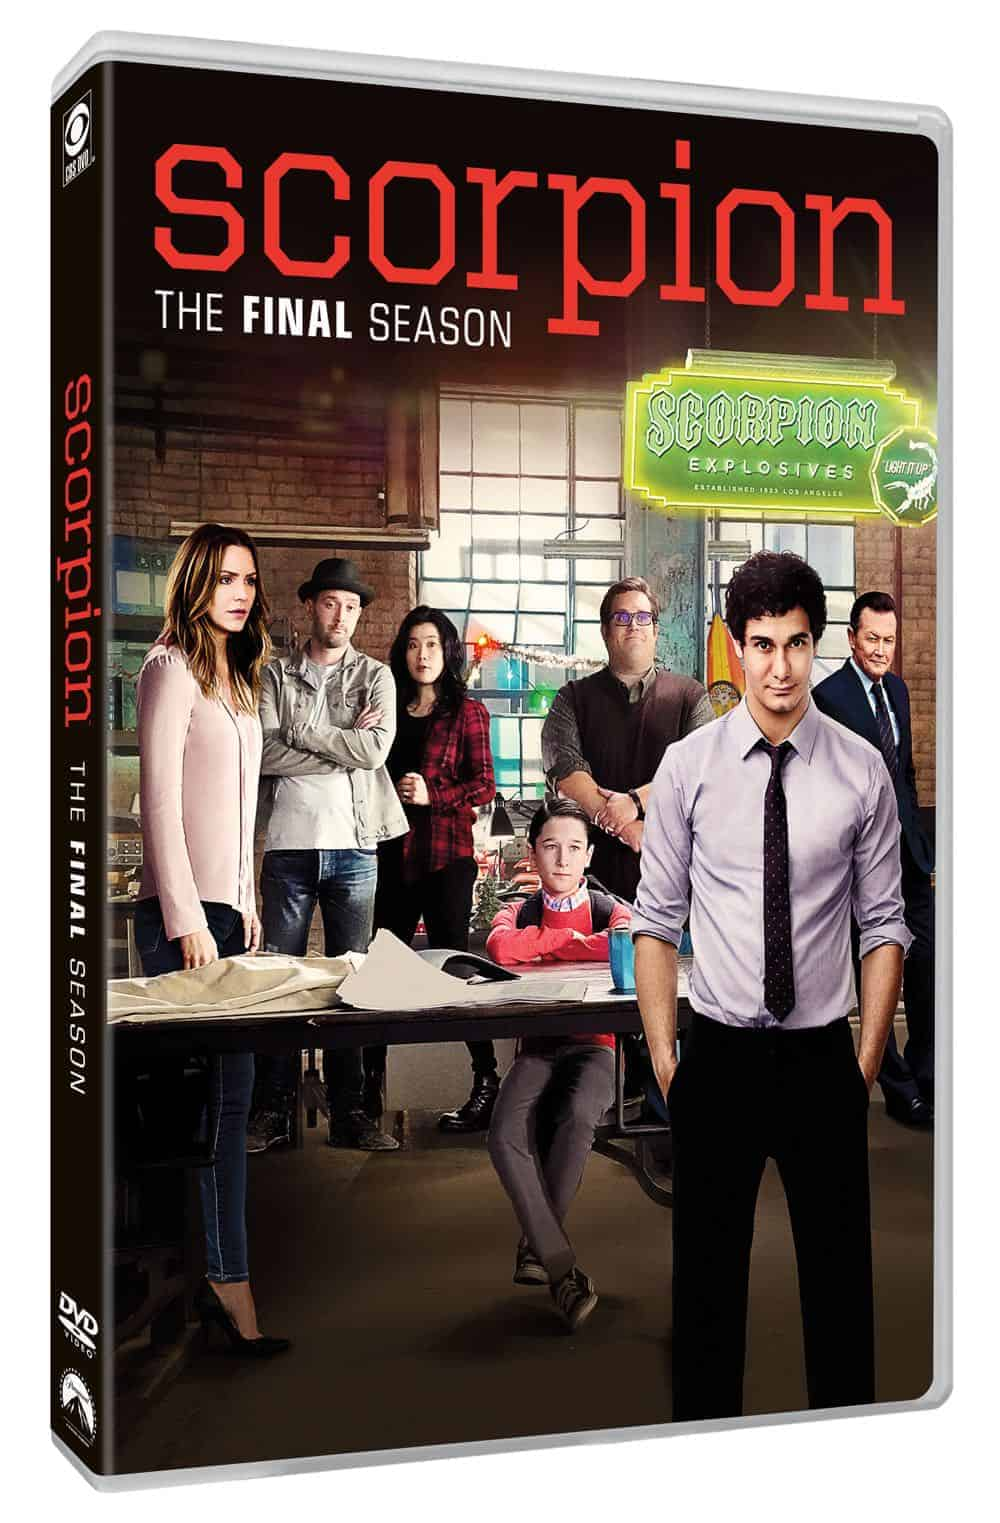 Scorpion Season 4 DVD 2